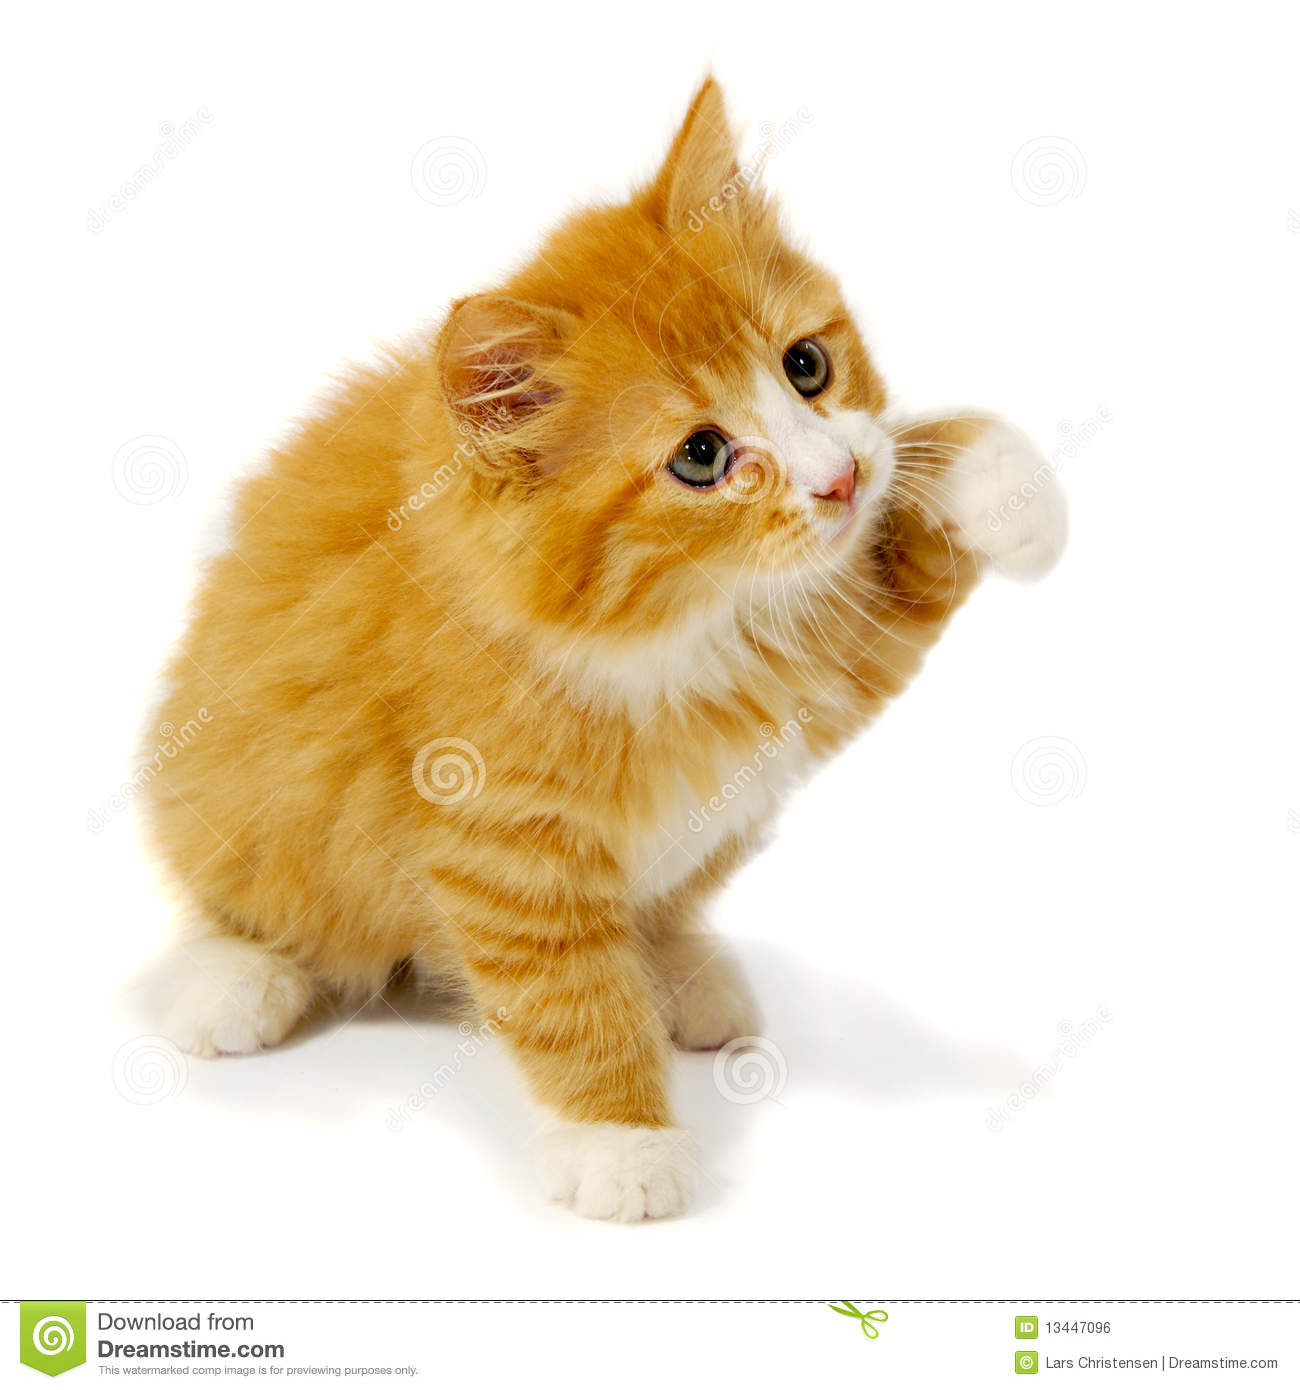 Http Www Dreamstime Com Royalty Free Stock Image Small Kitten Image13447096